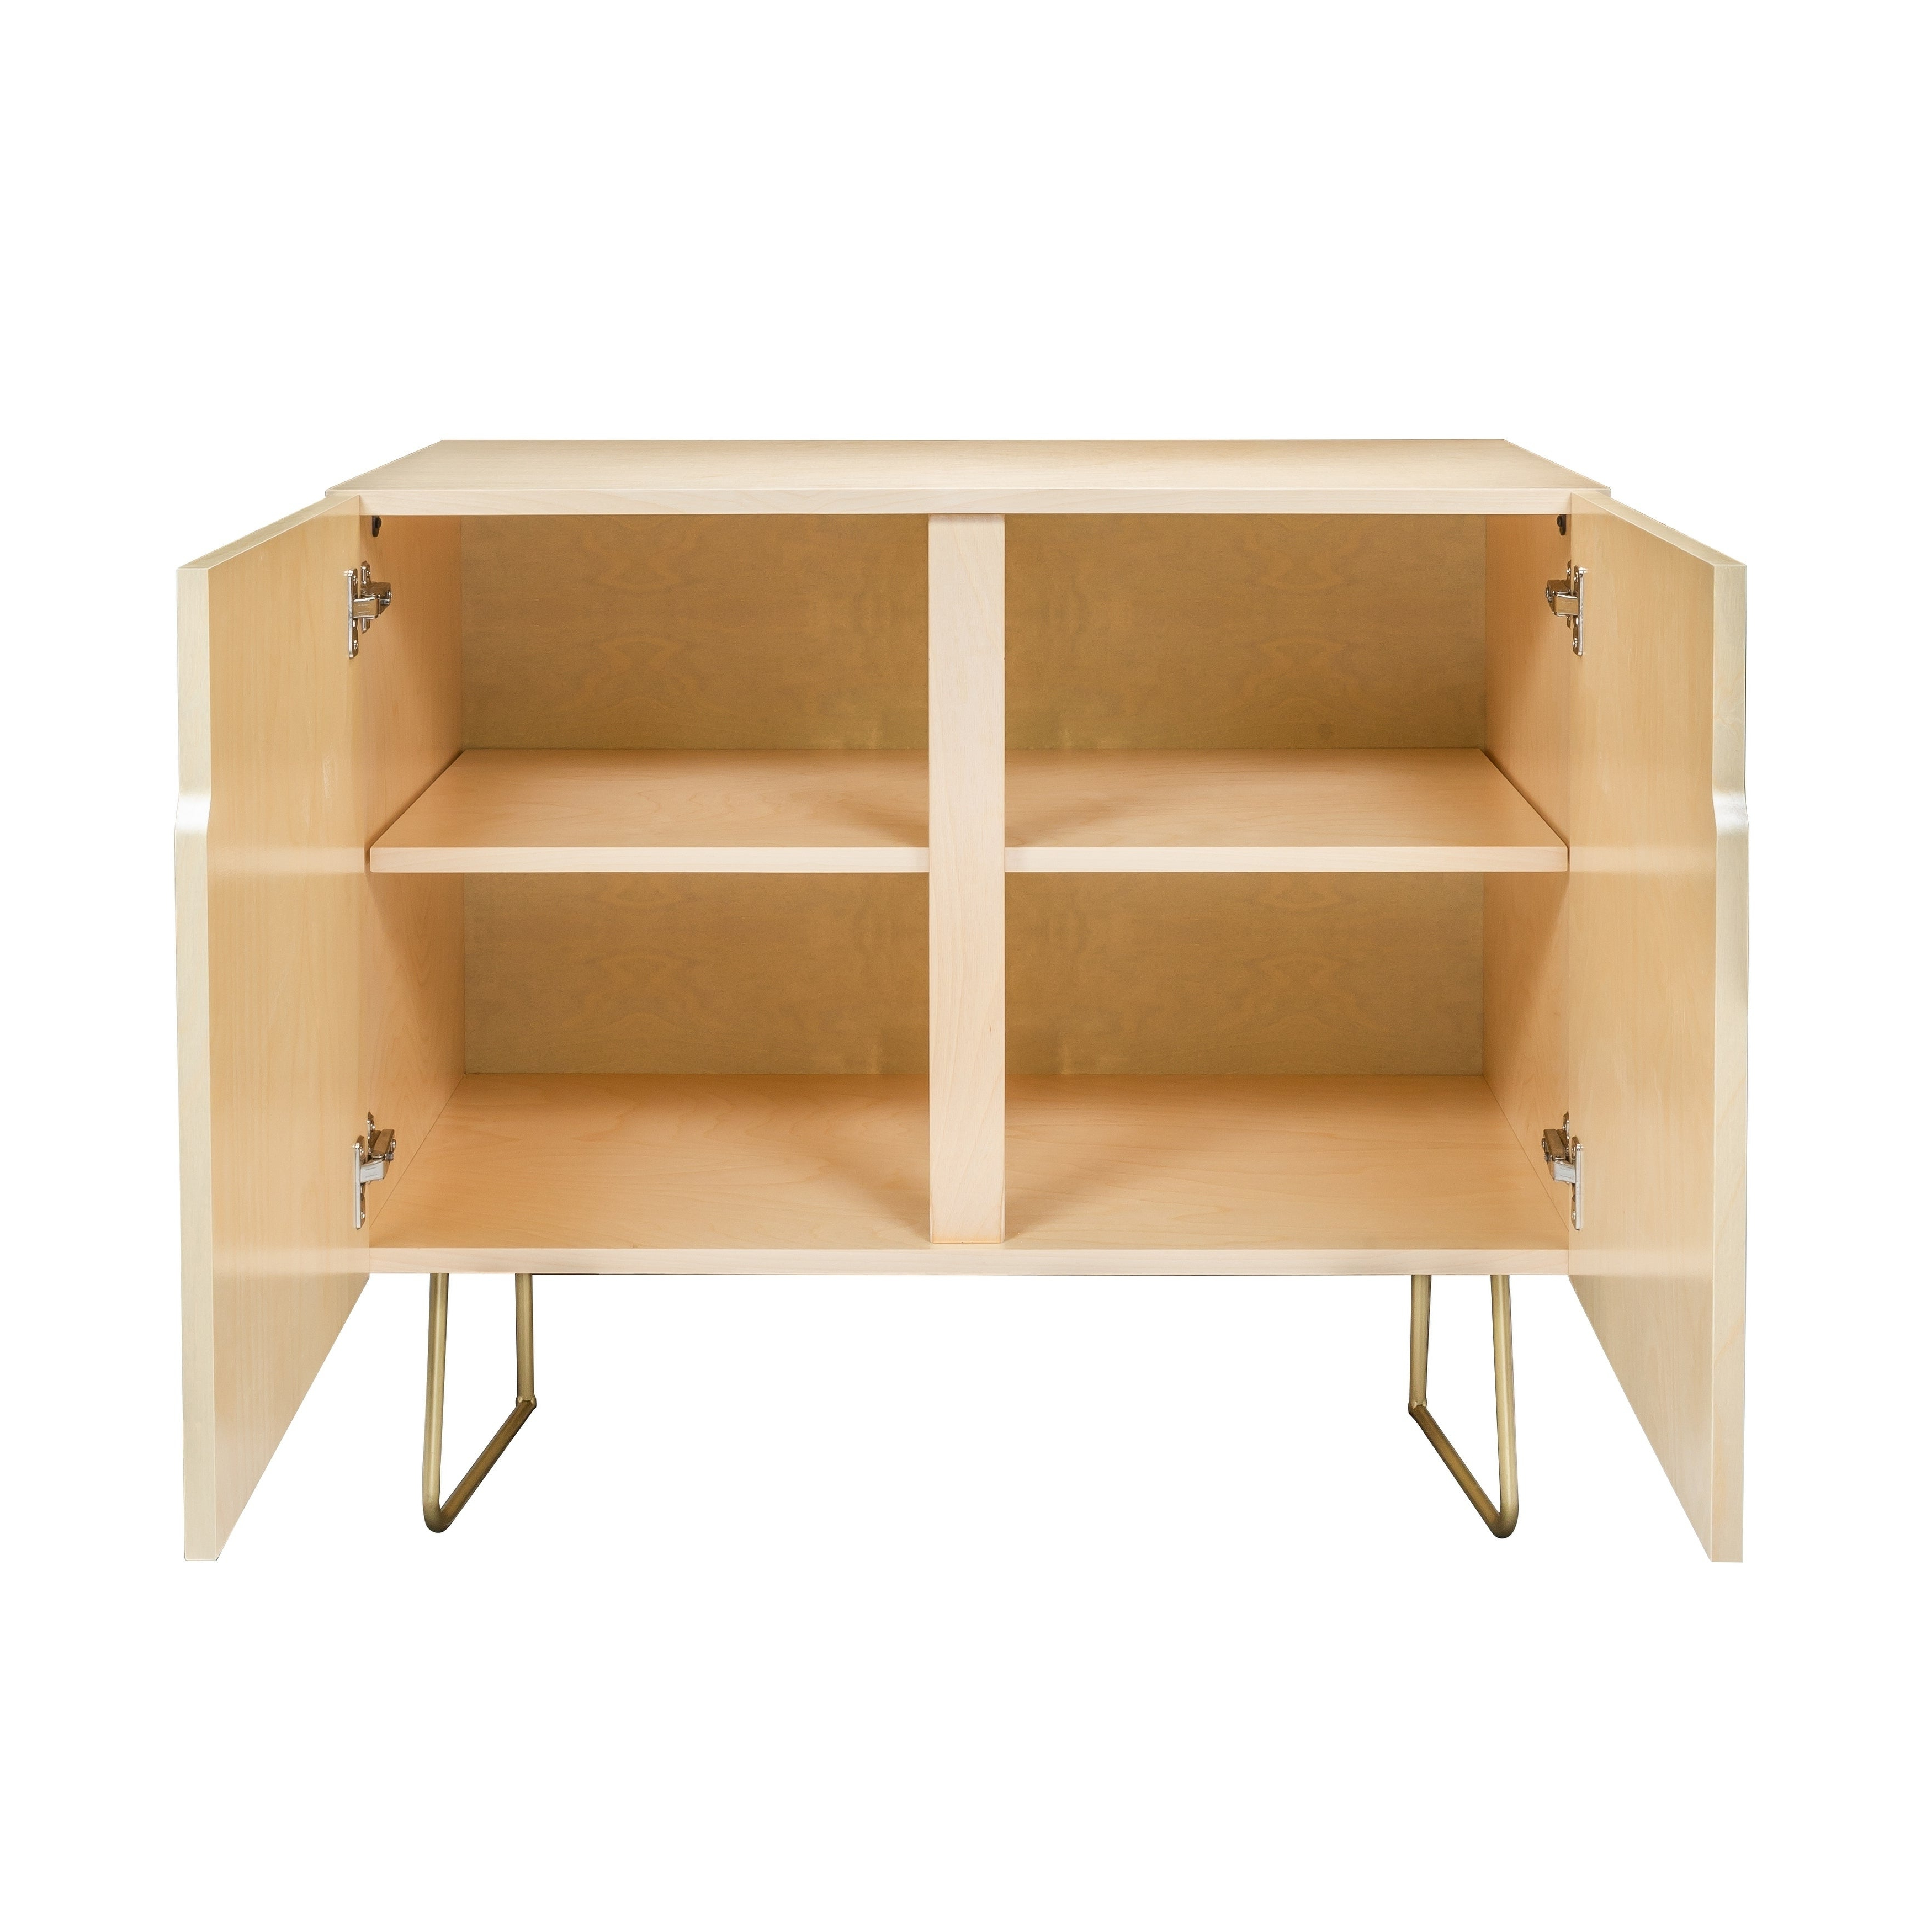 Deny Designs Blossom Credenza (birch Or Walnut, 2 Leg Options) For Oenomel Credenzas (View 5 of 20)